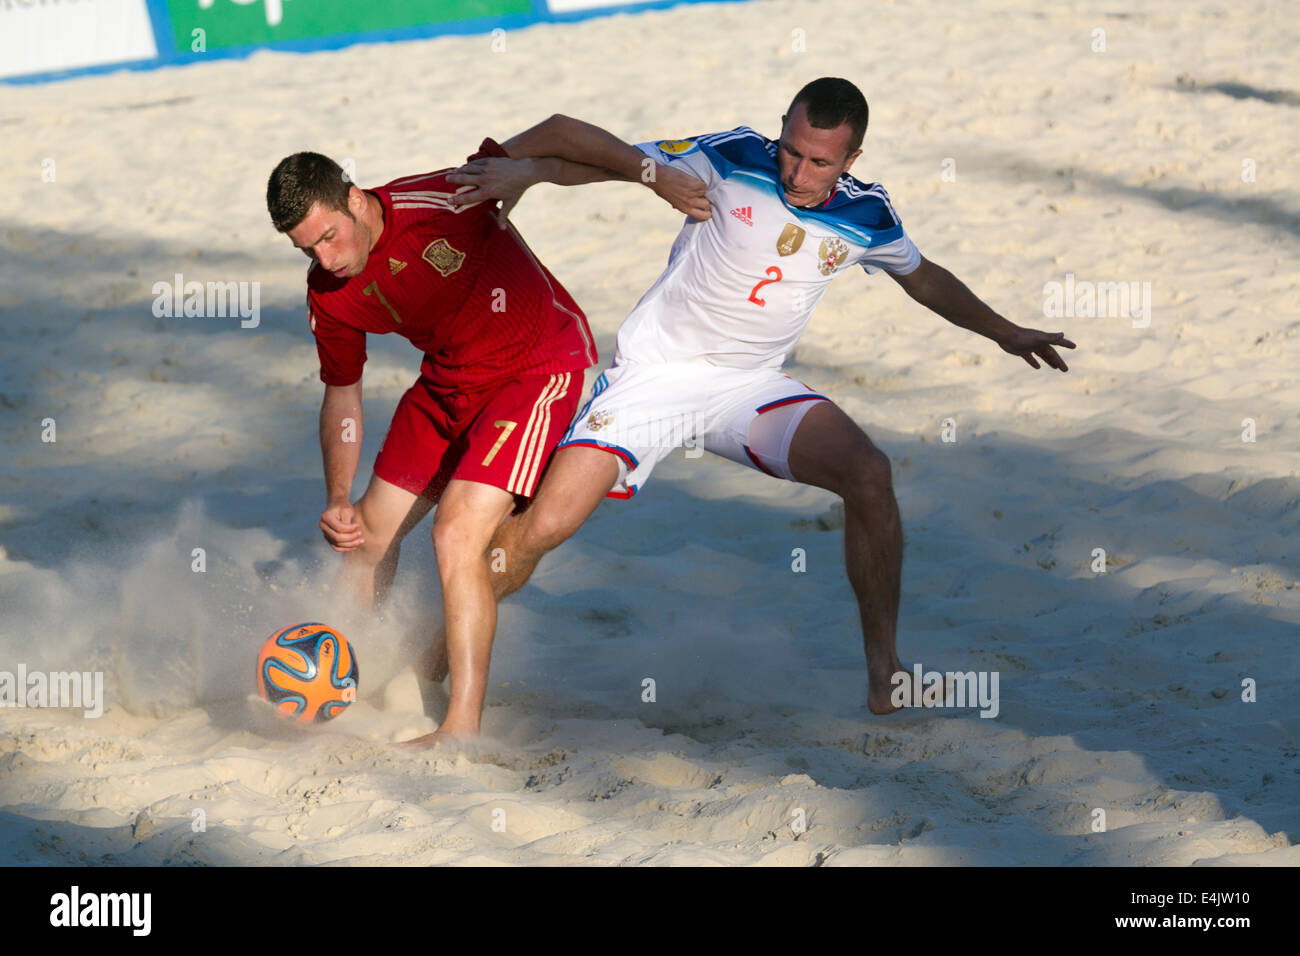 Moscow, Russia. 13th July, 2014. Euro Beach Soccer League tournament, Moscow stage. Game between Russia and Spain - Stock Image